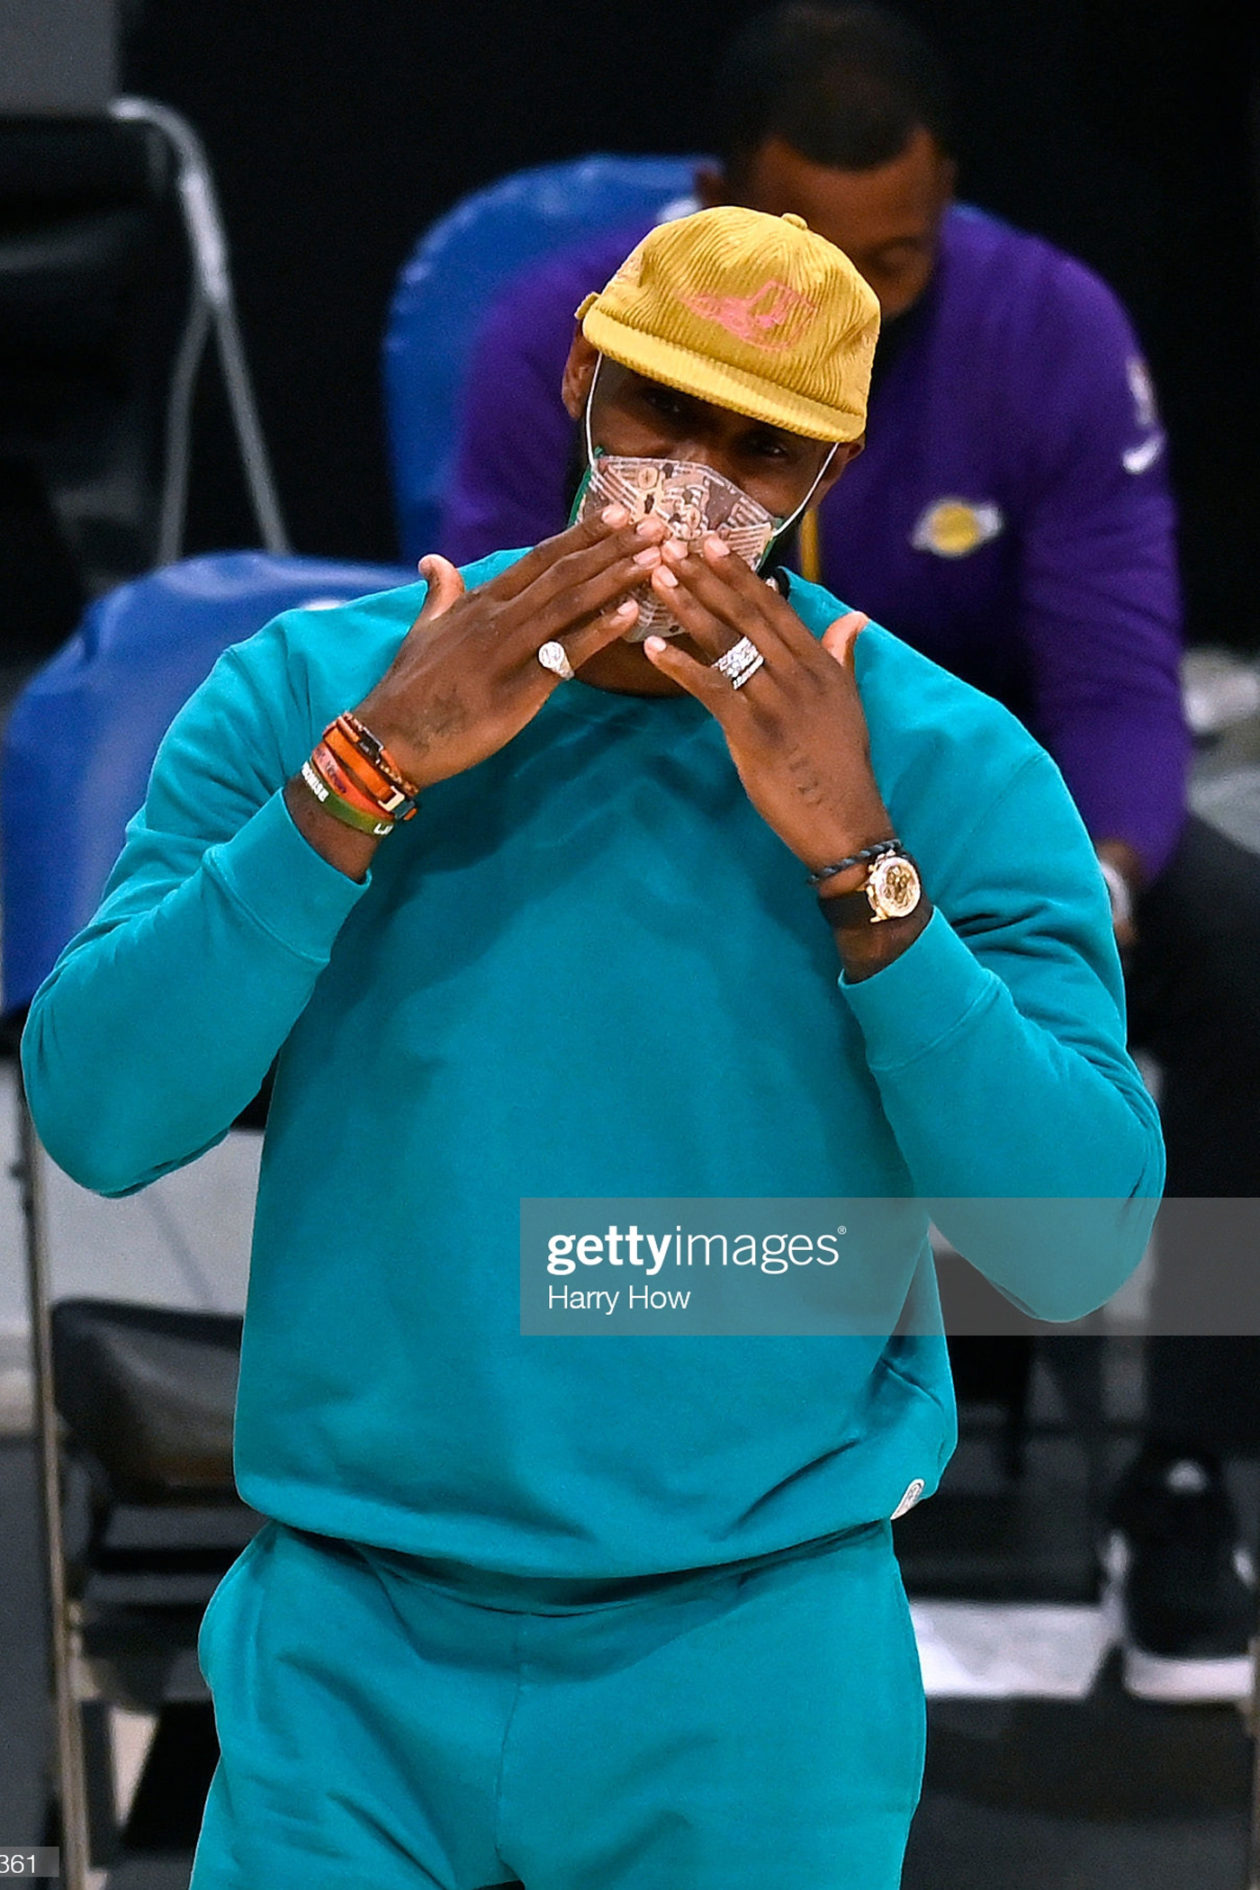 LeBron James & Rolex / Foto: Harry How, Getty Images